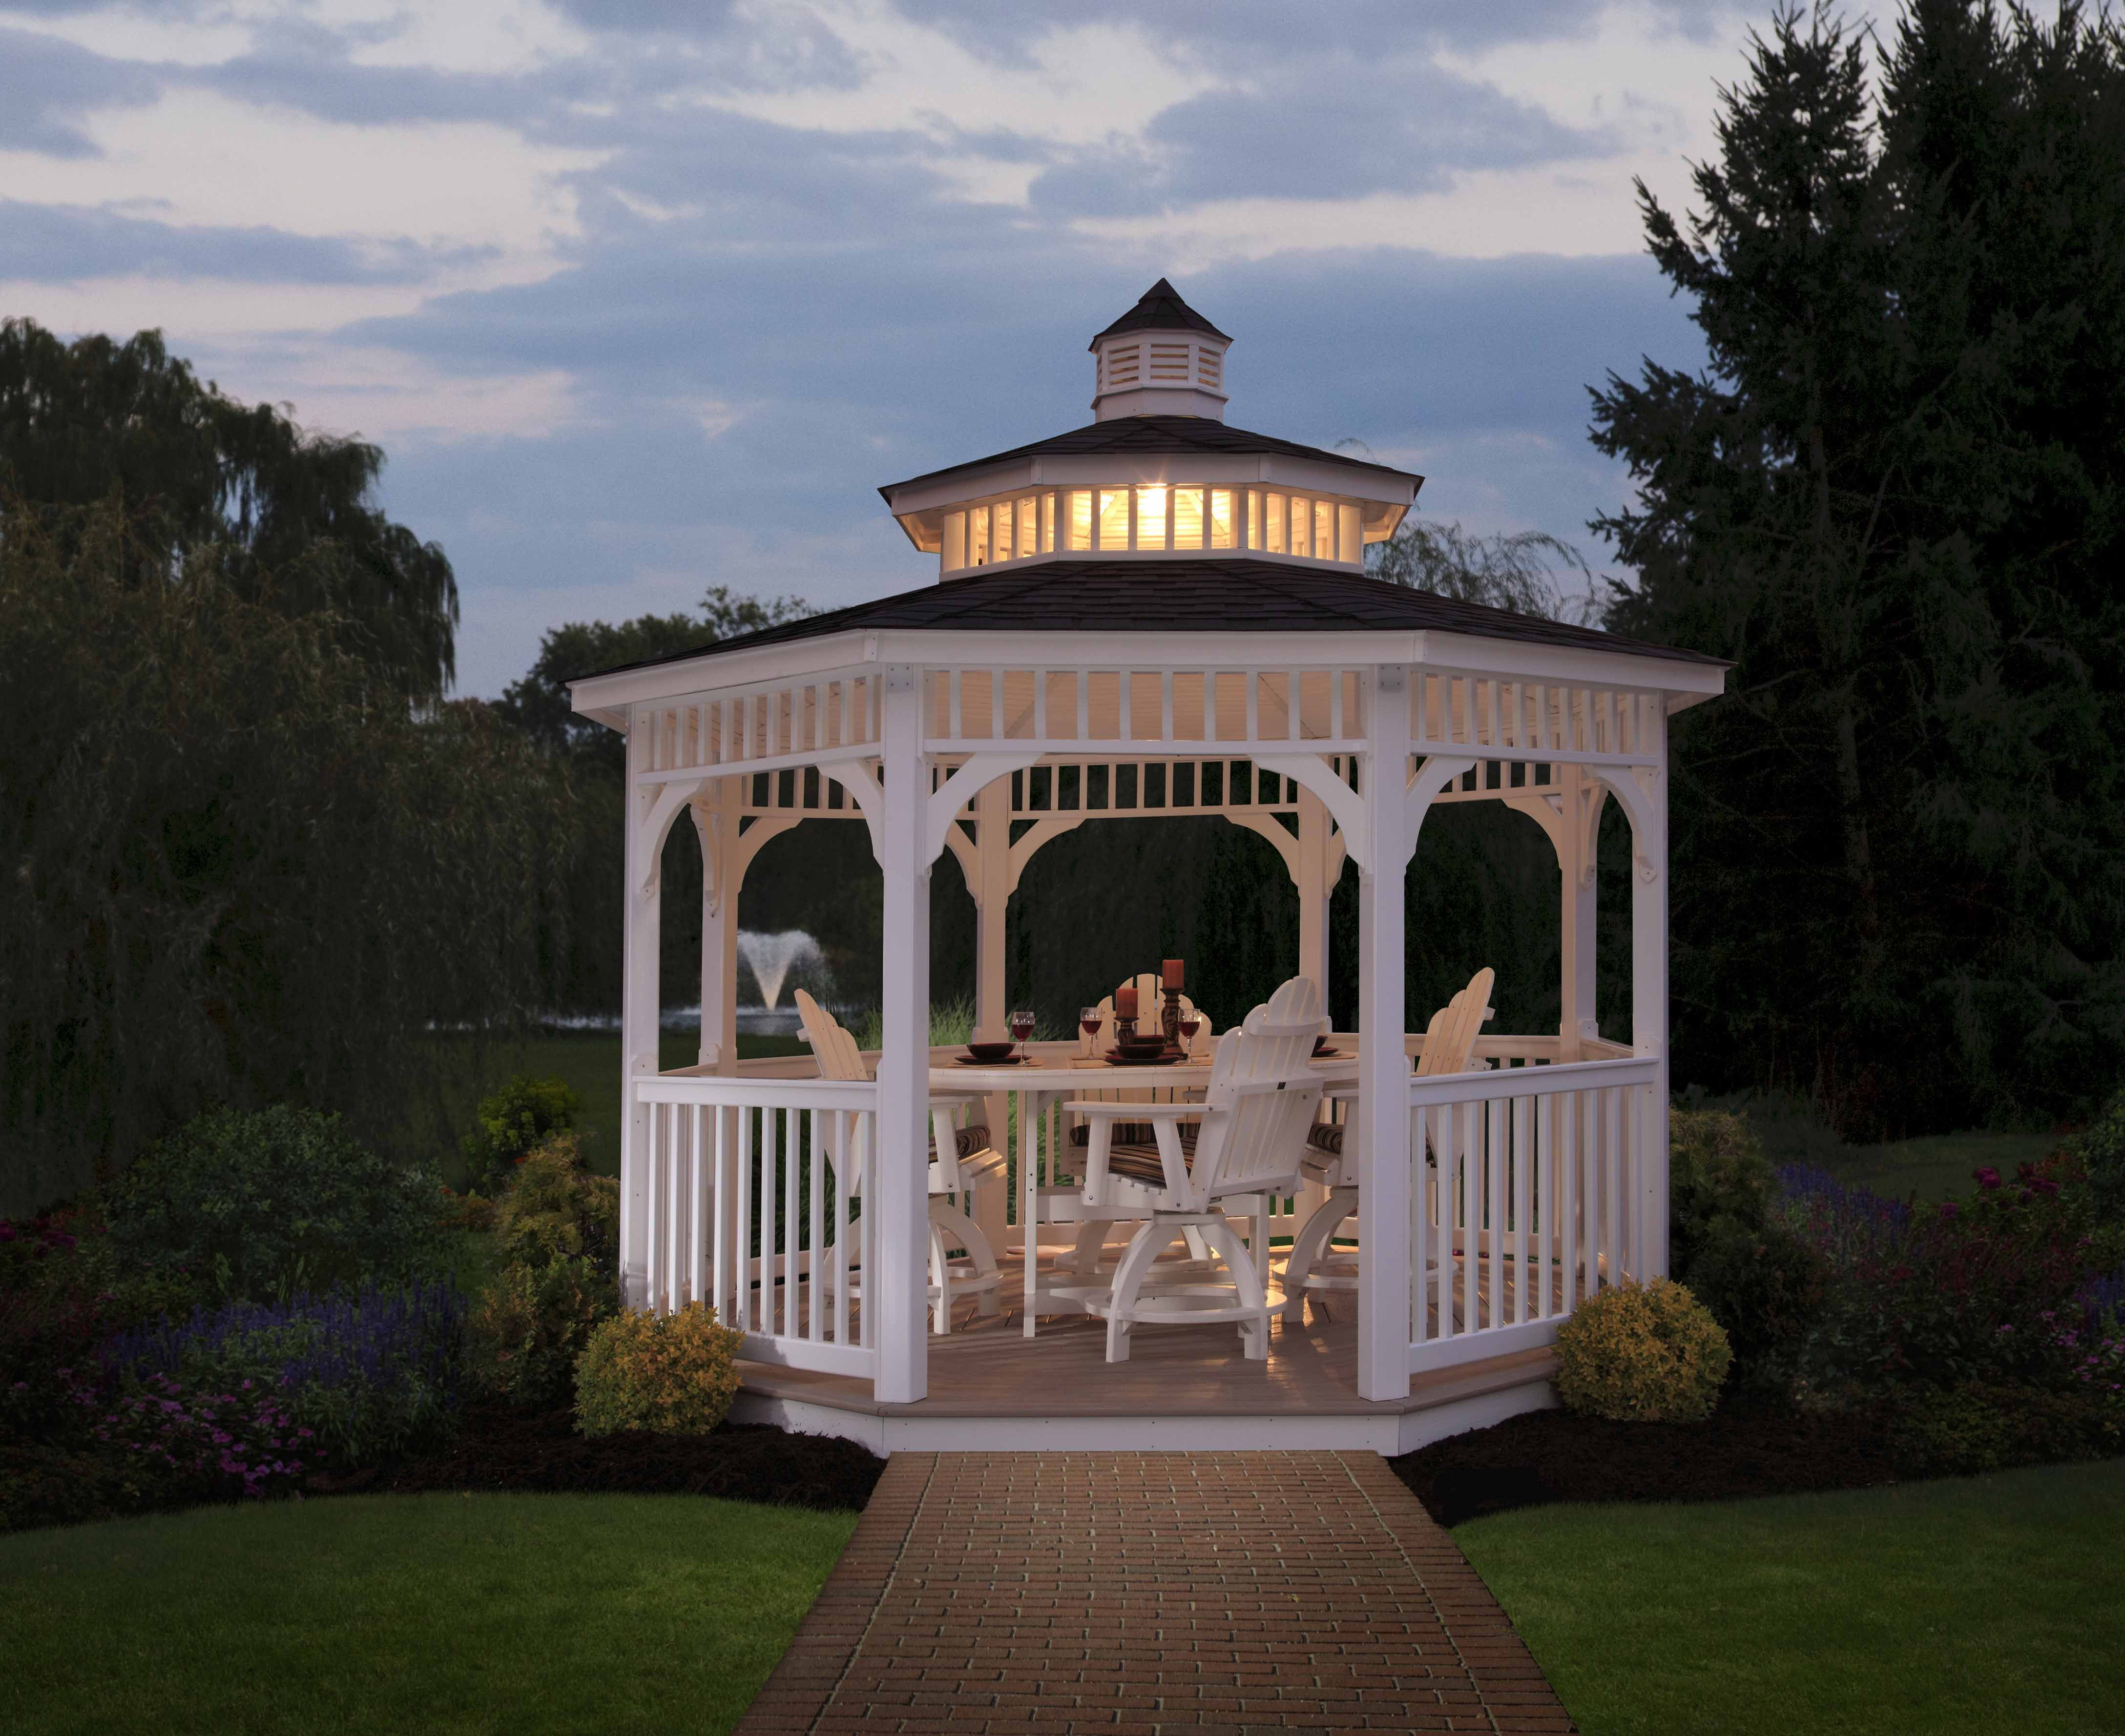 Berlin Gardens Octagon Gazebo In White Vinyl Makes A Beautiful Gathering  Spot For Dinner Or Conversation